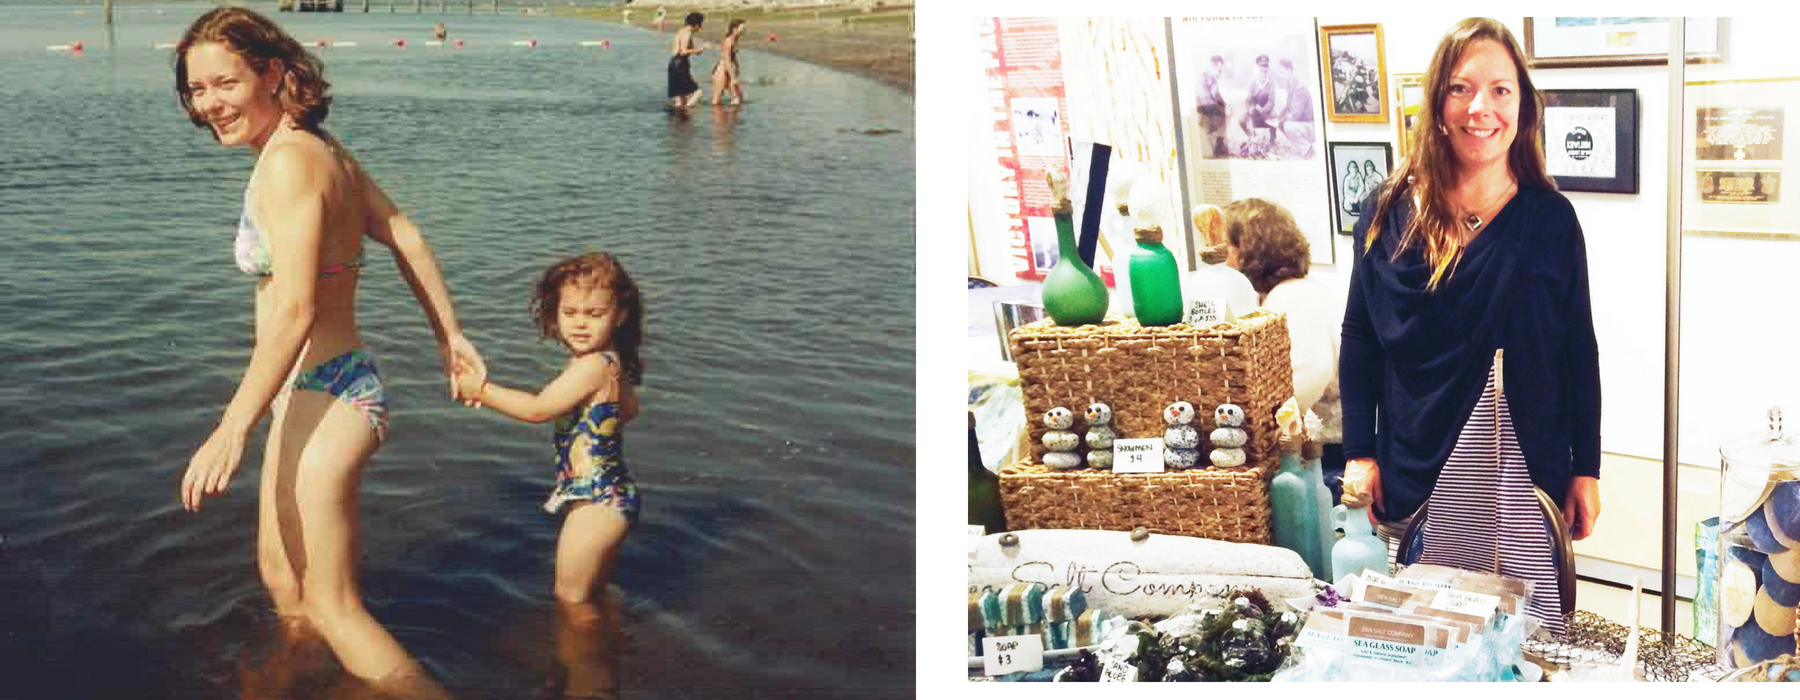 That's me and my daughter, Ceara in Crescent Beach 23 years ago! The photo on the right is my very first market, when I used to call my little business Sea Salt Company.